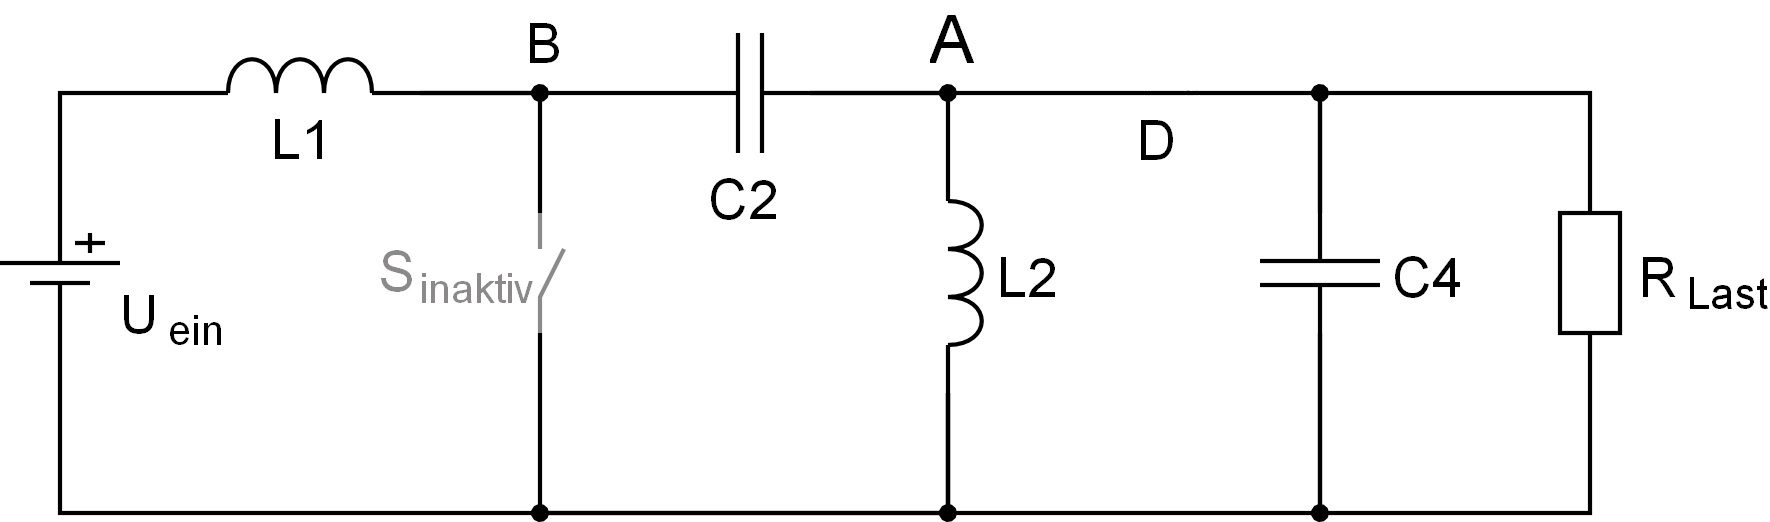 Help To Find Problem In Sepic Circuit Electronics Forum Circuits Is Thevenin Equivalent B